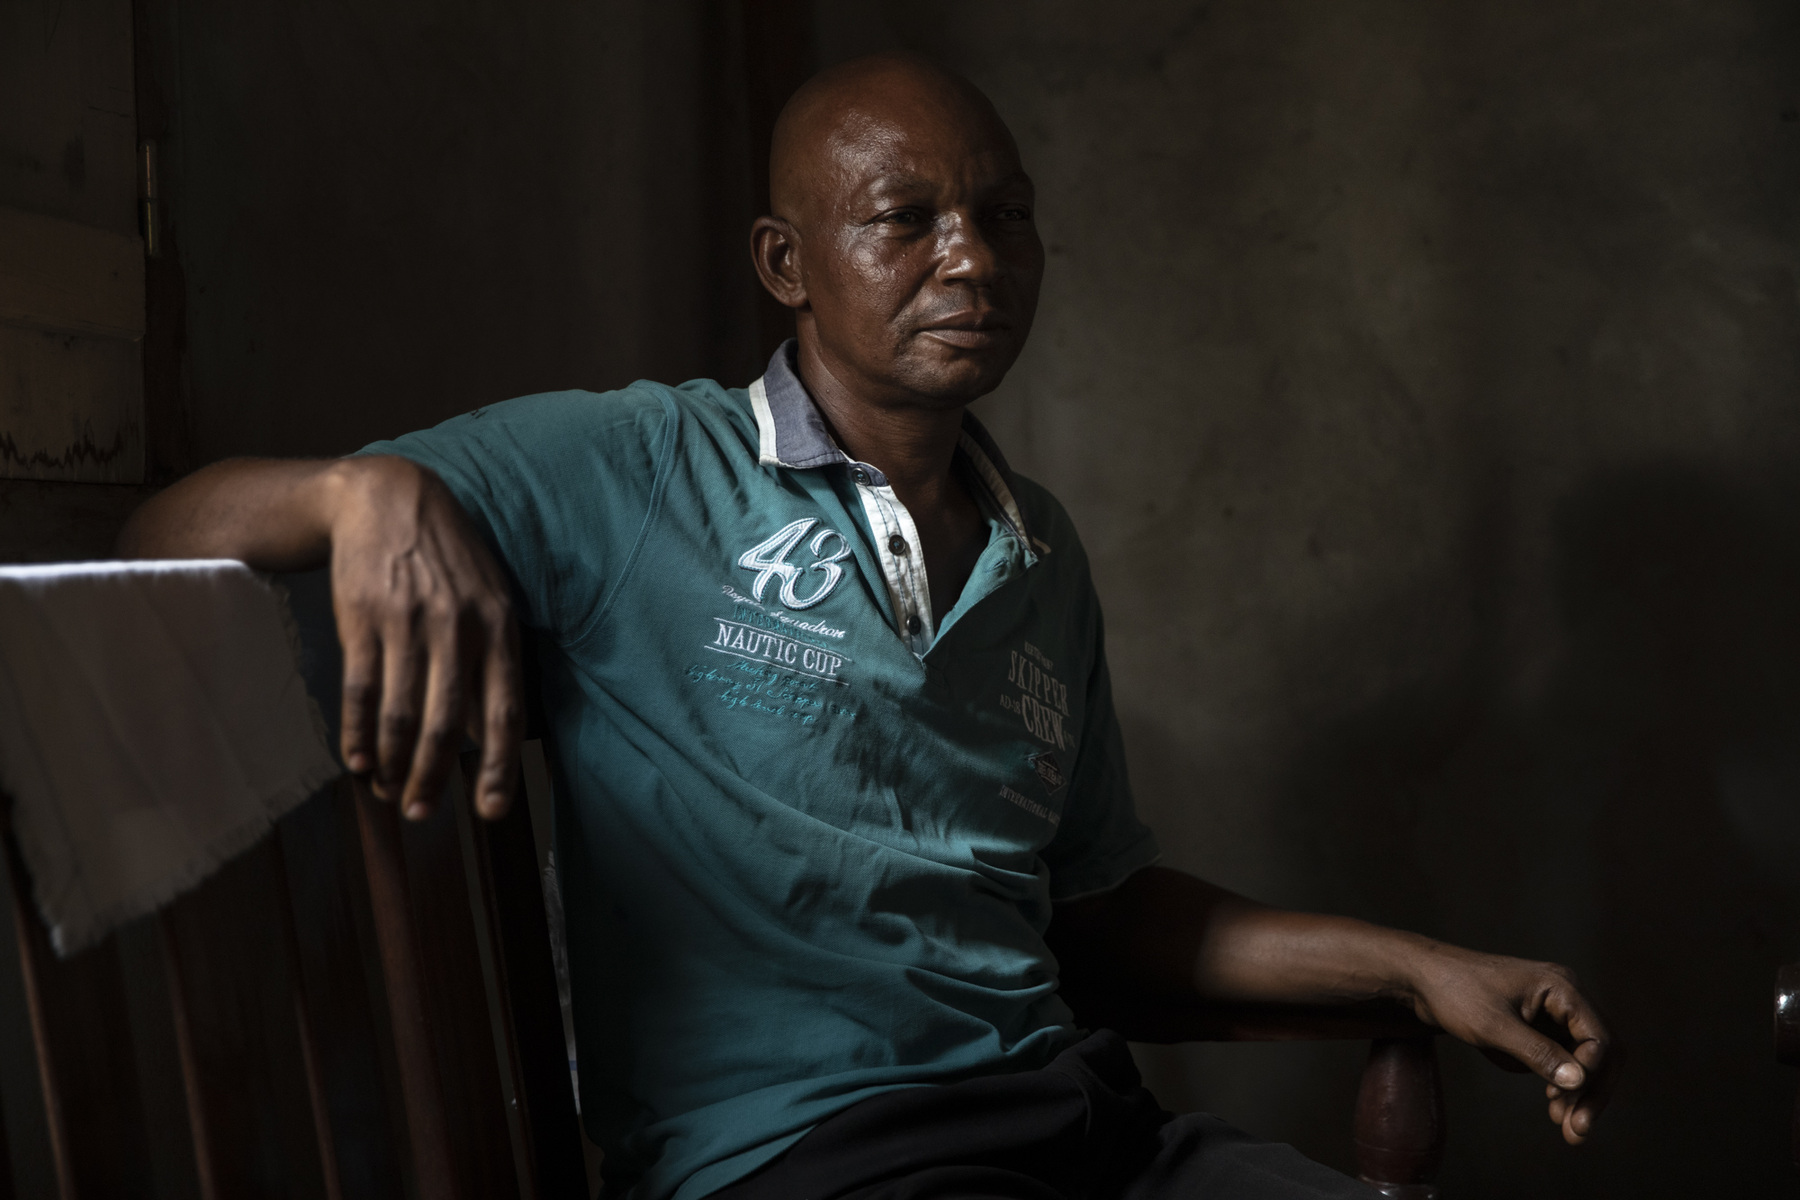 Adrienne Surprenant - Désiré Ndoumba, a 50-years-old father of 8, hosted around 50 of his neighbours when the floods invaded their homes. At first they sleep in the back of his house, on a small portion of land spared by the waters. When it rained, all 50 people would fit in his house. I cant just stare at the people staying homeless. Thats why I opened my doors to them, so that they can sleep well, and that everyone has at least a small space, she says. Now only 30 people remain, and as the water level dropped, they have a bit more space to sleep. He lives in Bangui, capital of the Central African Republic.